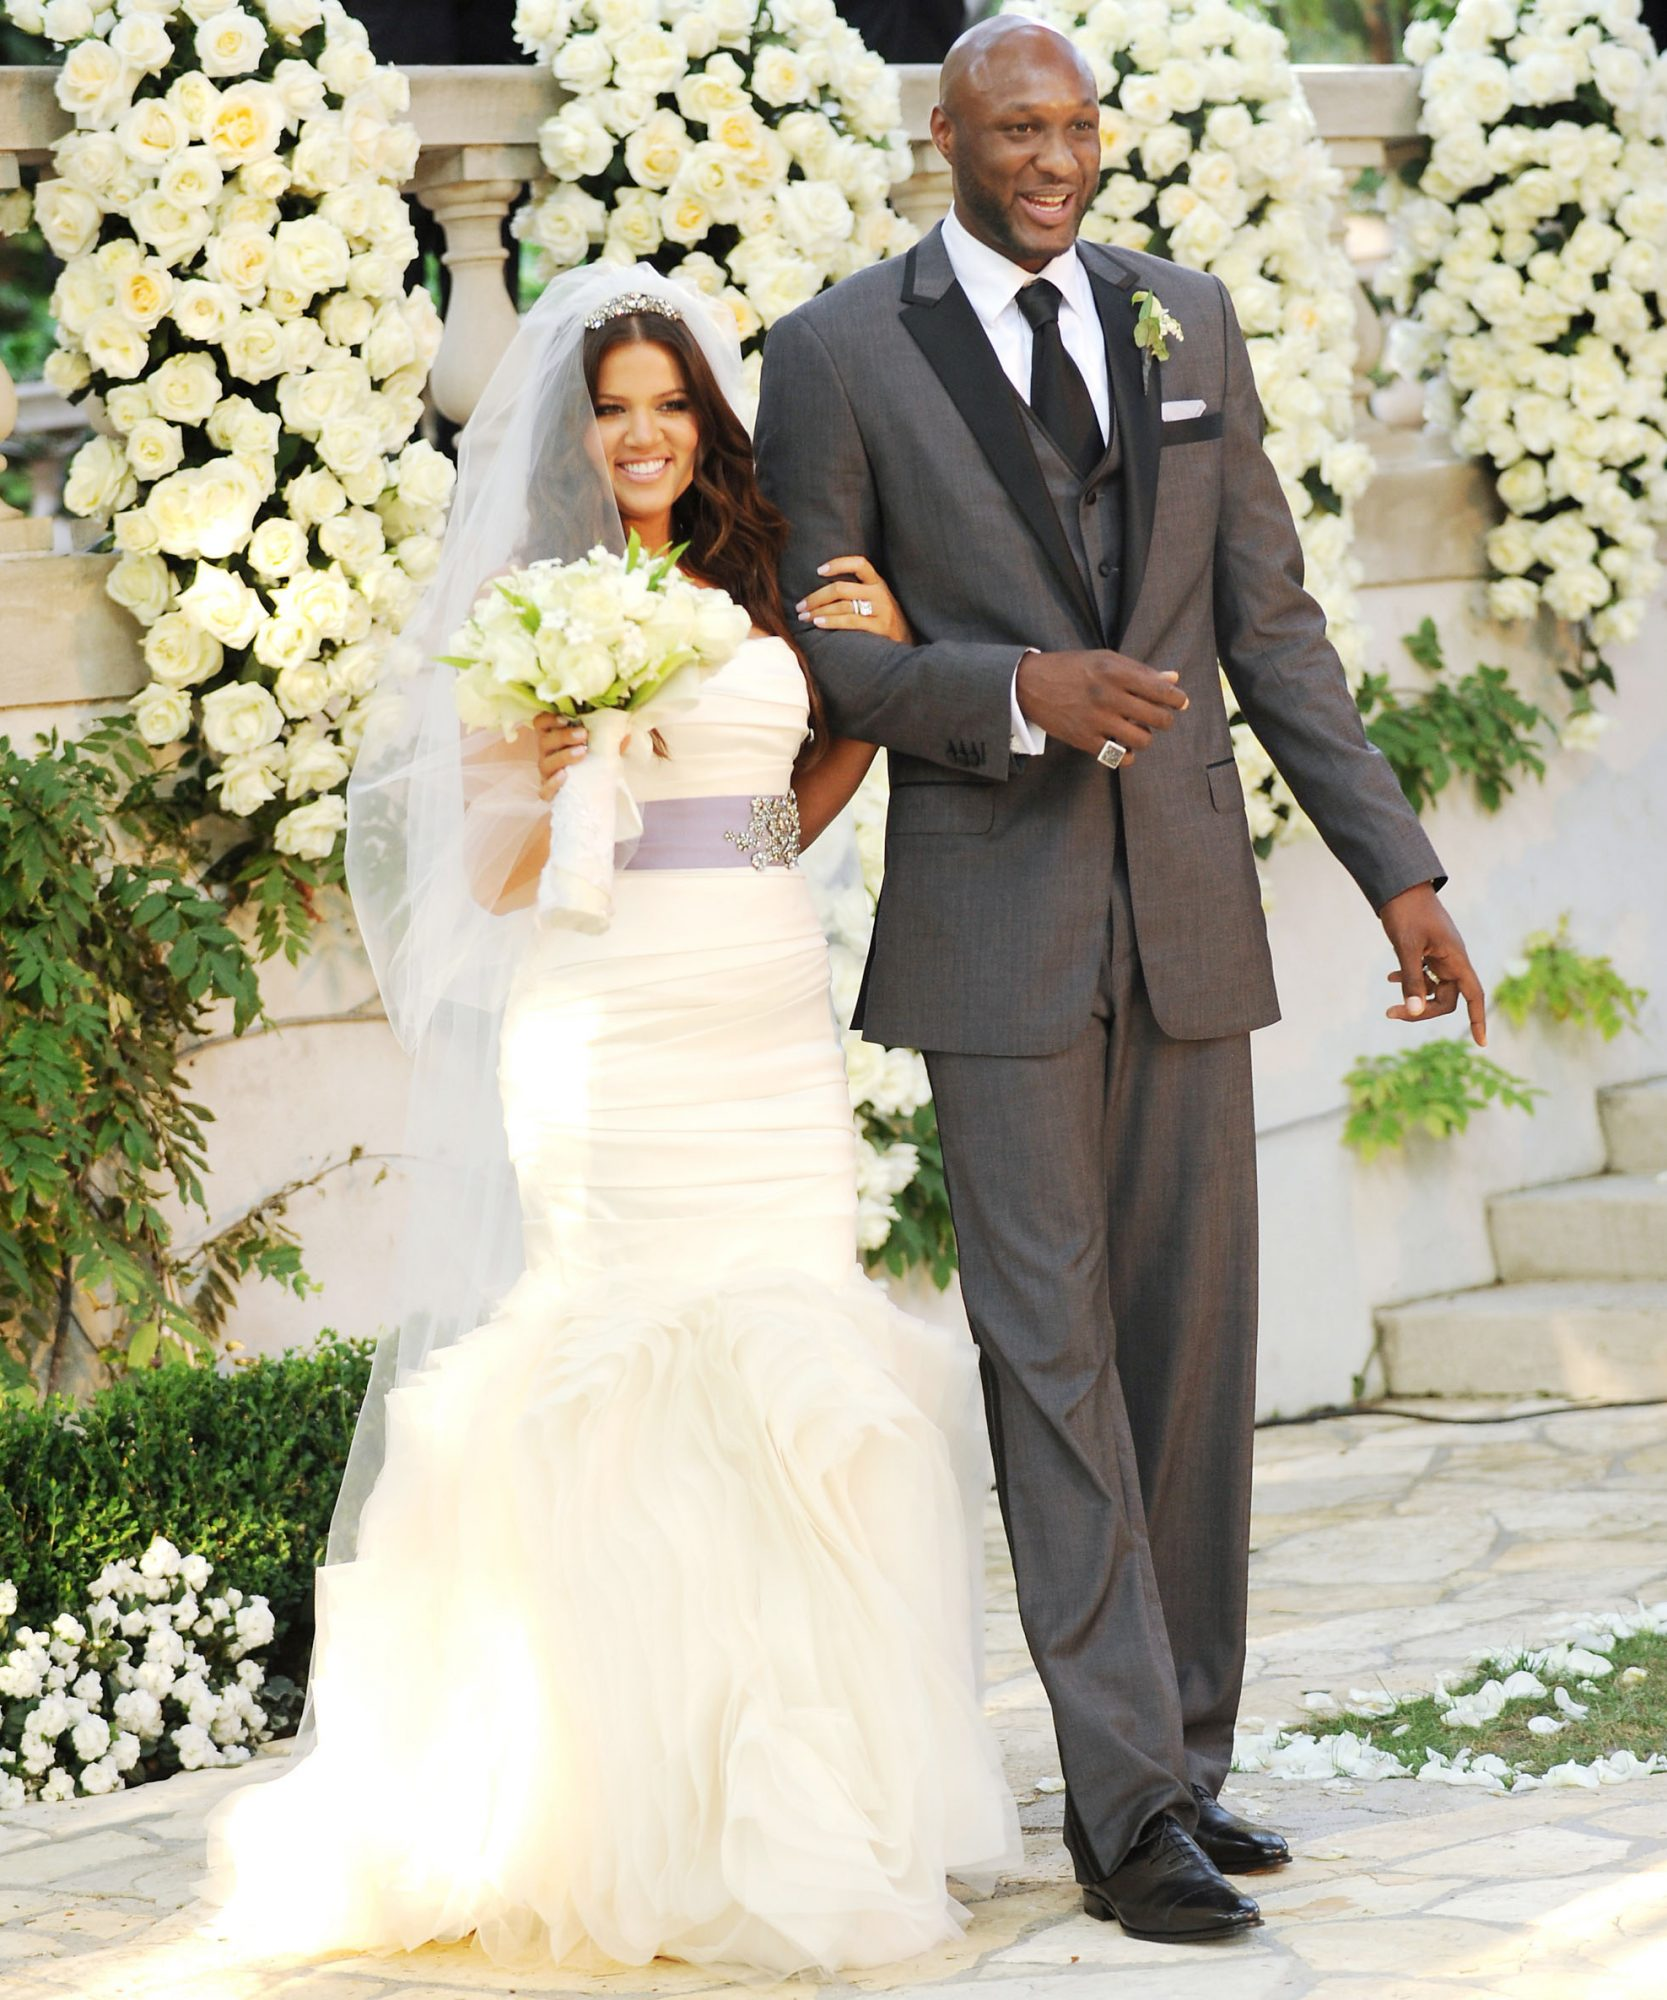 6 celebrities in vera wang wedding dresses instyle pkhlo kardashian and lamar odom junglespirit Gallery